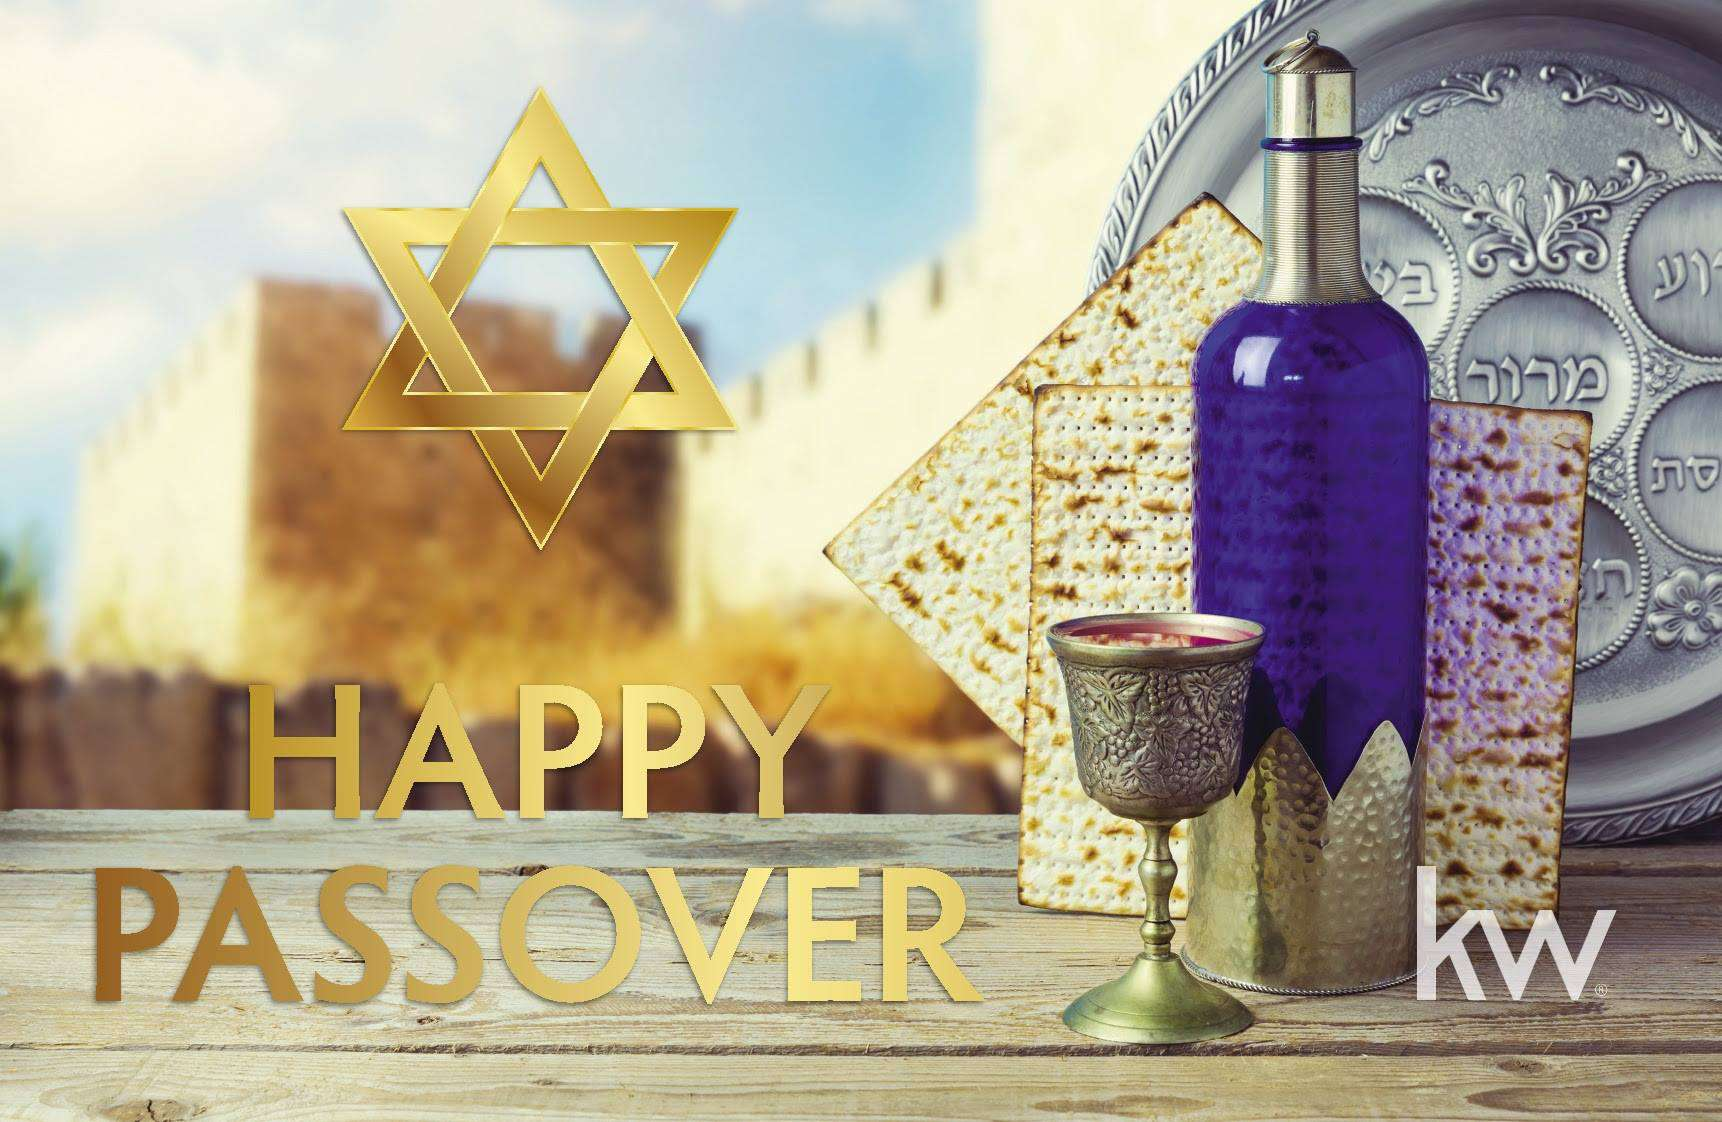 Passover Wishes Awesome Images, Pictures, Photos, Wallpapers